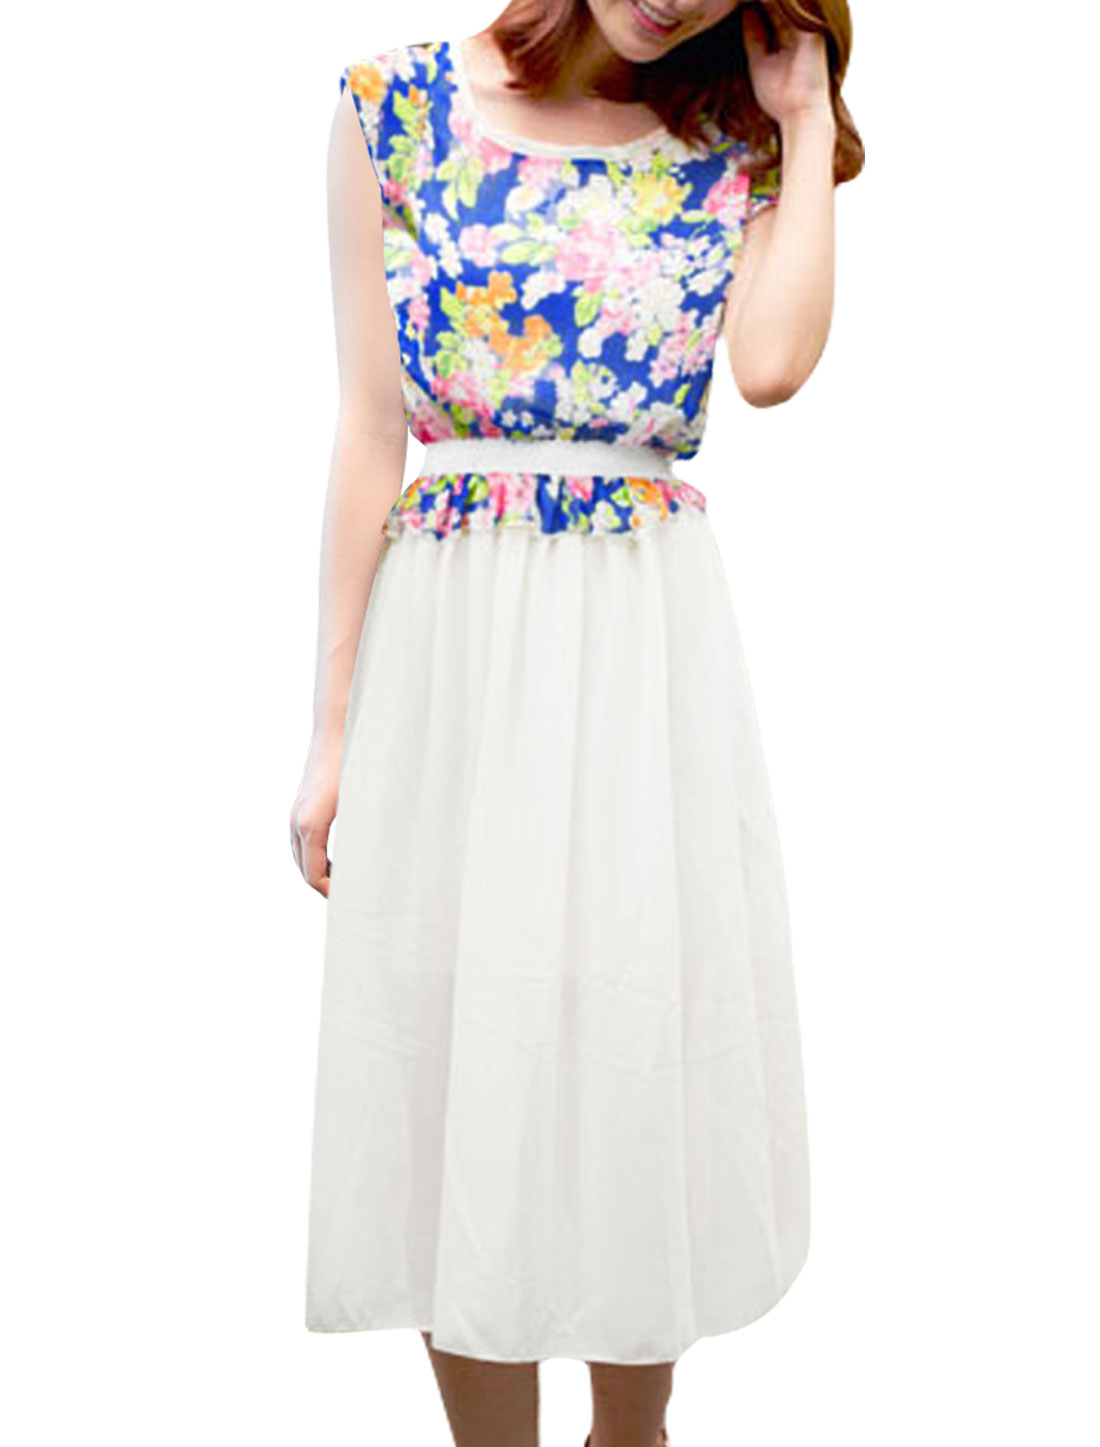 Ladies Blue M Round Neck Floral Printed Summer Chiffon Dress